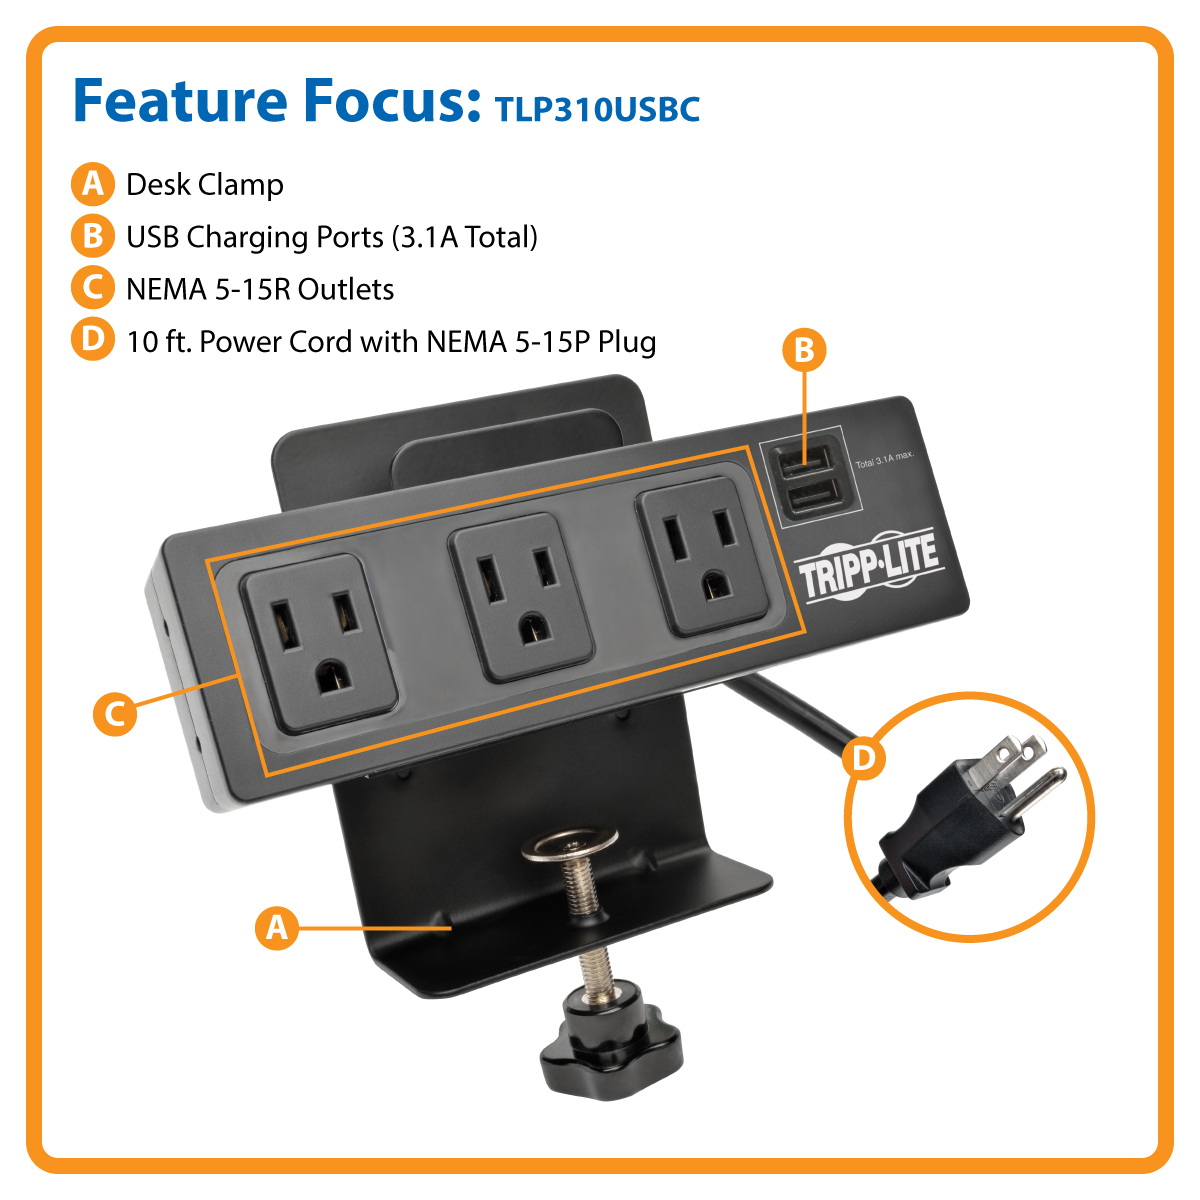 Tripp Lite Tlp310usbc 3 Surge Protector Power Strip Desk Clamp With 2 Port Usb Charging 15 A Ac 120 V Output Connectors